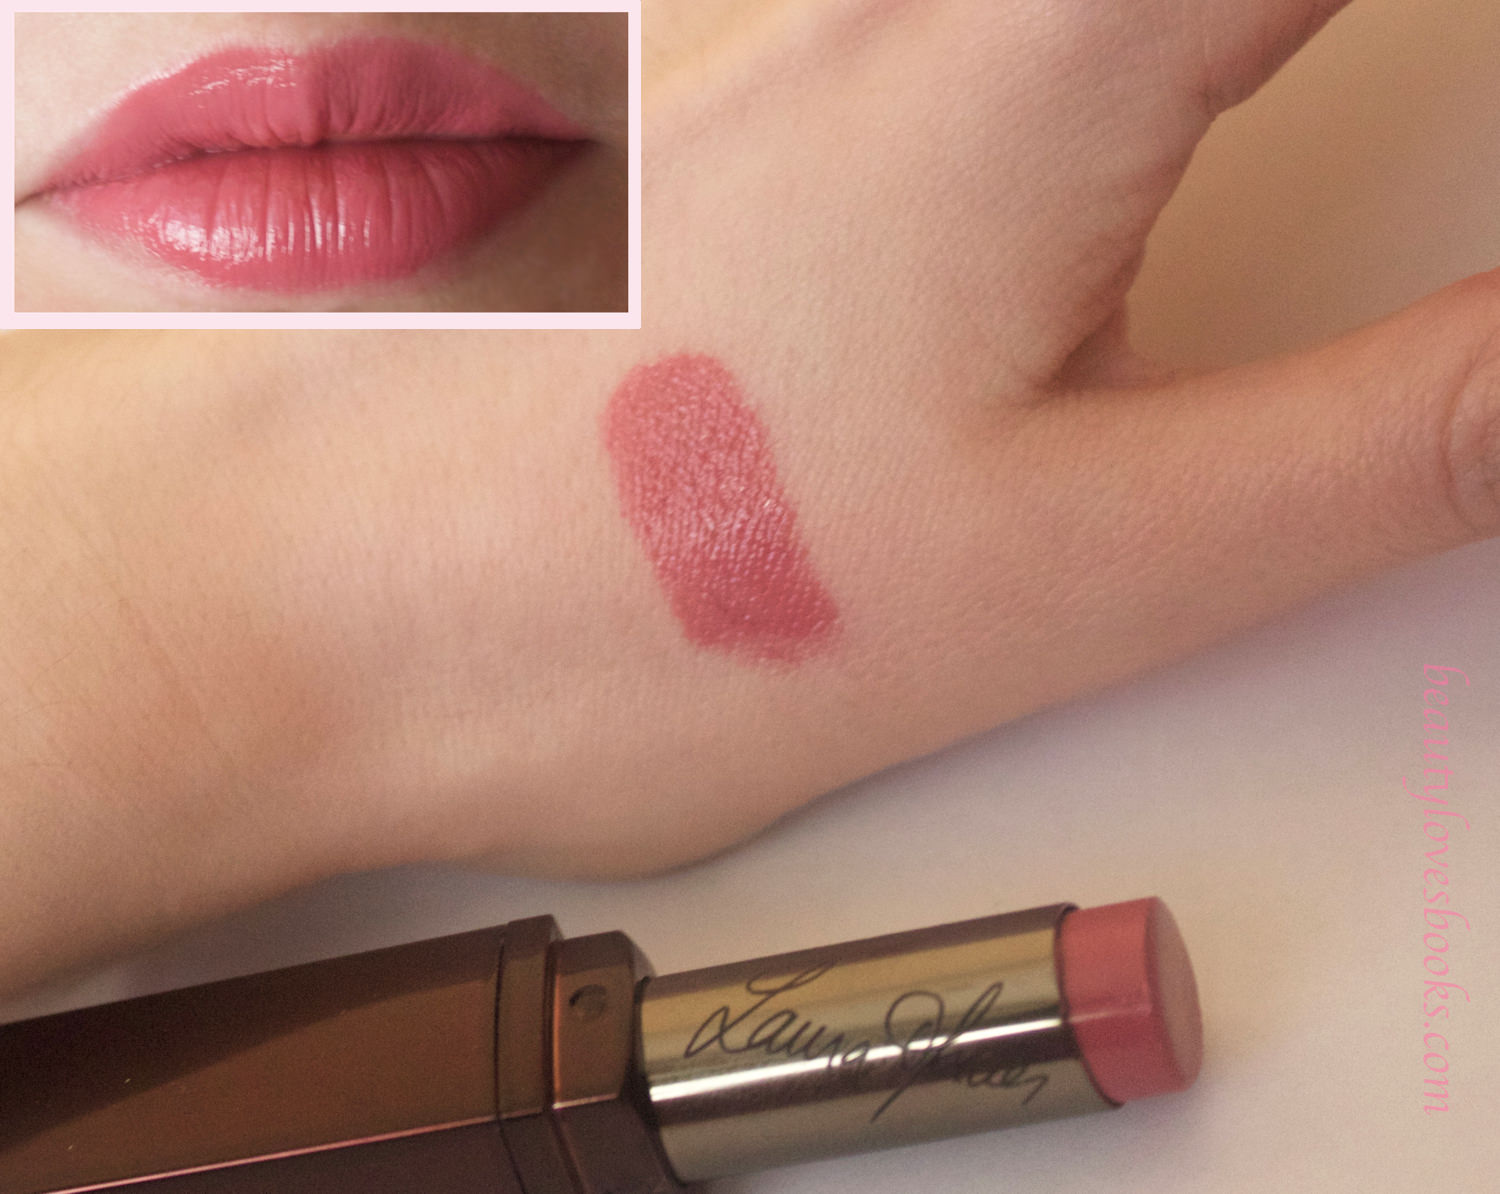 Laura Mercier lip parfait creamy colourbalm in the shade Raspberry ripple swatch